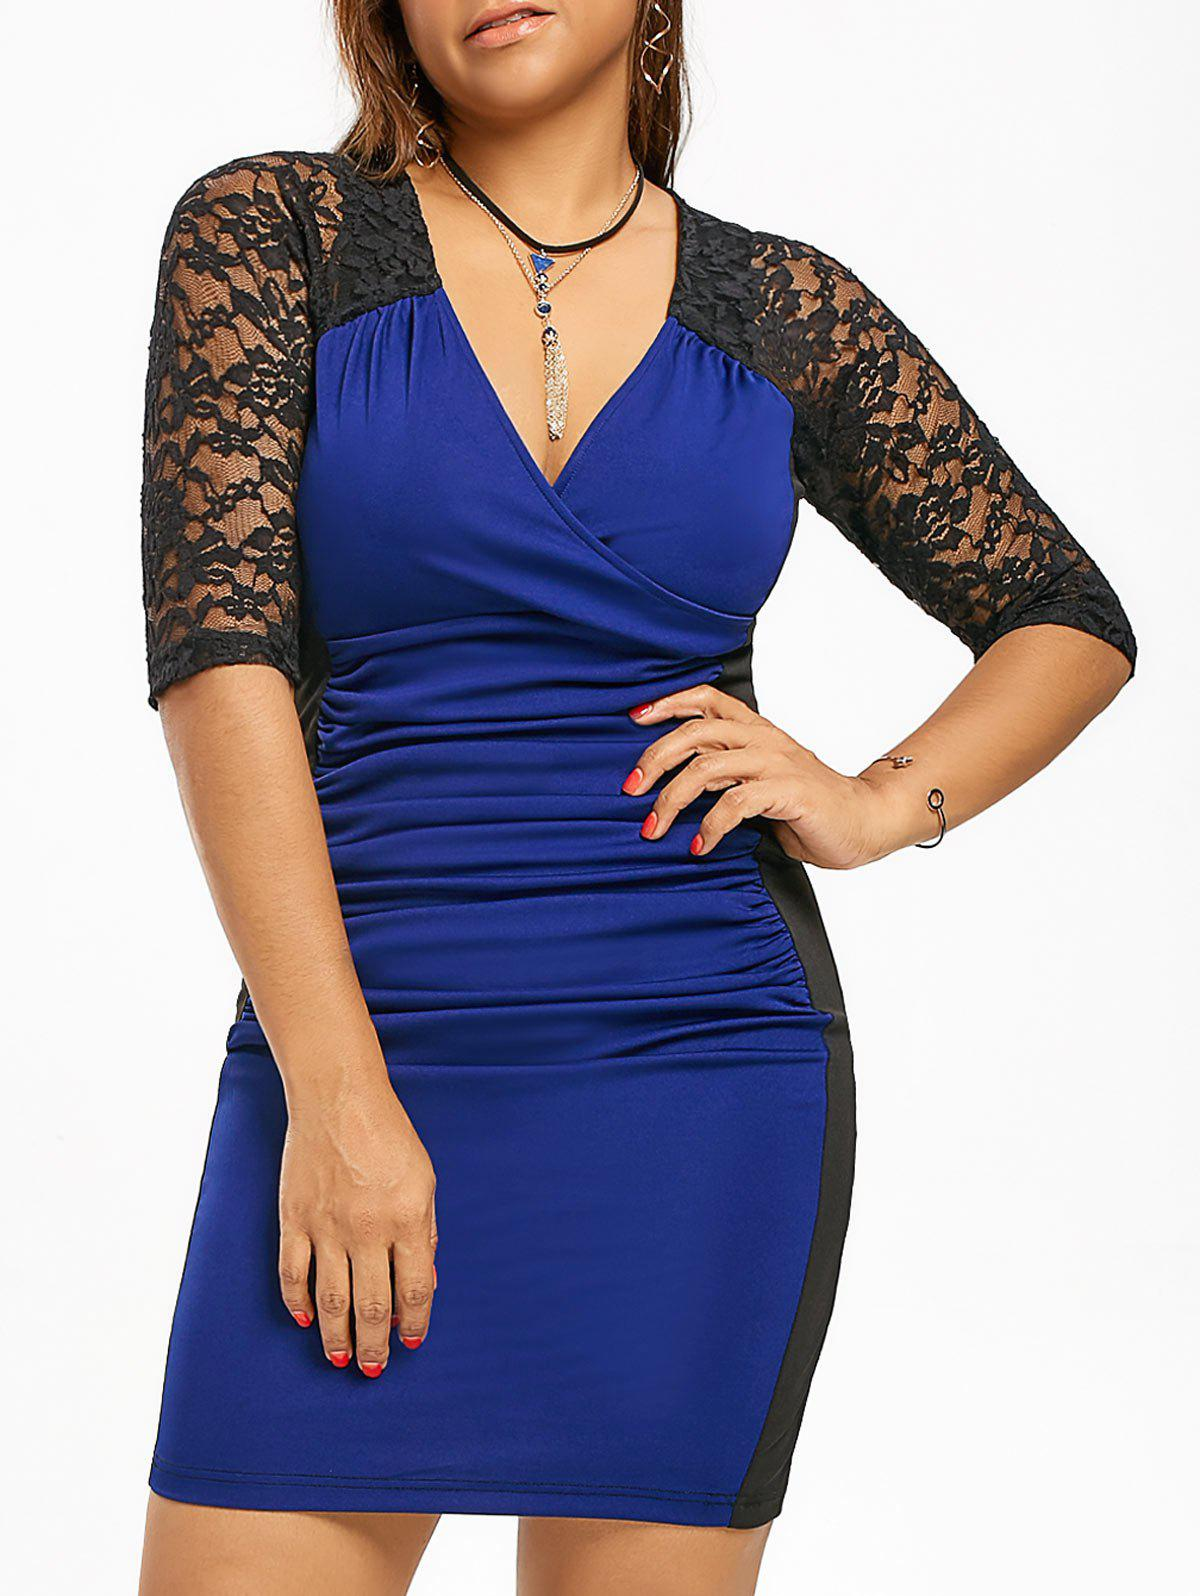 Ruched Lace Insert Plus Size Sheath DressWOMEN<br><br>Size: 3XL; Color: BLUE AND BLACK; Style: Brief; Material: Polyester,Spandex; Silhouette: Bodycon; Dresses Length: Mini; Neckline: V-Neck; Sleeve Length: 3/4 Length Sleeves; Embellishment: Lace; Pattern Type: Others; With Belt: No; Season: Fall,Spring,Summer; Weight: 0.3160kg; Package Contents: 1 x Dress;